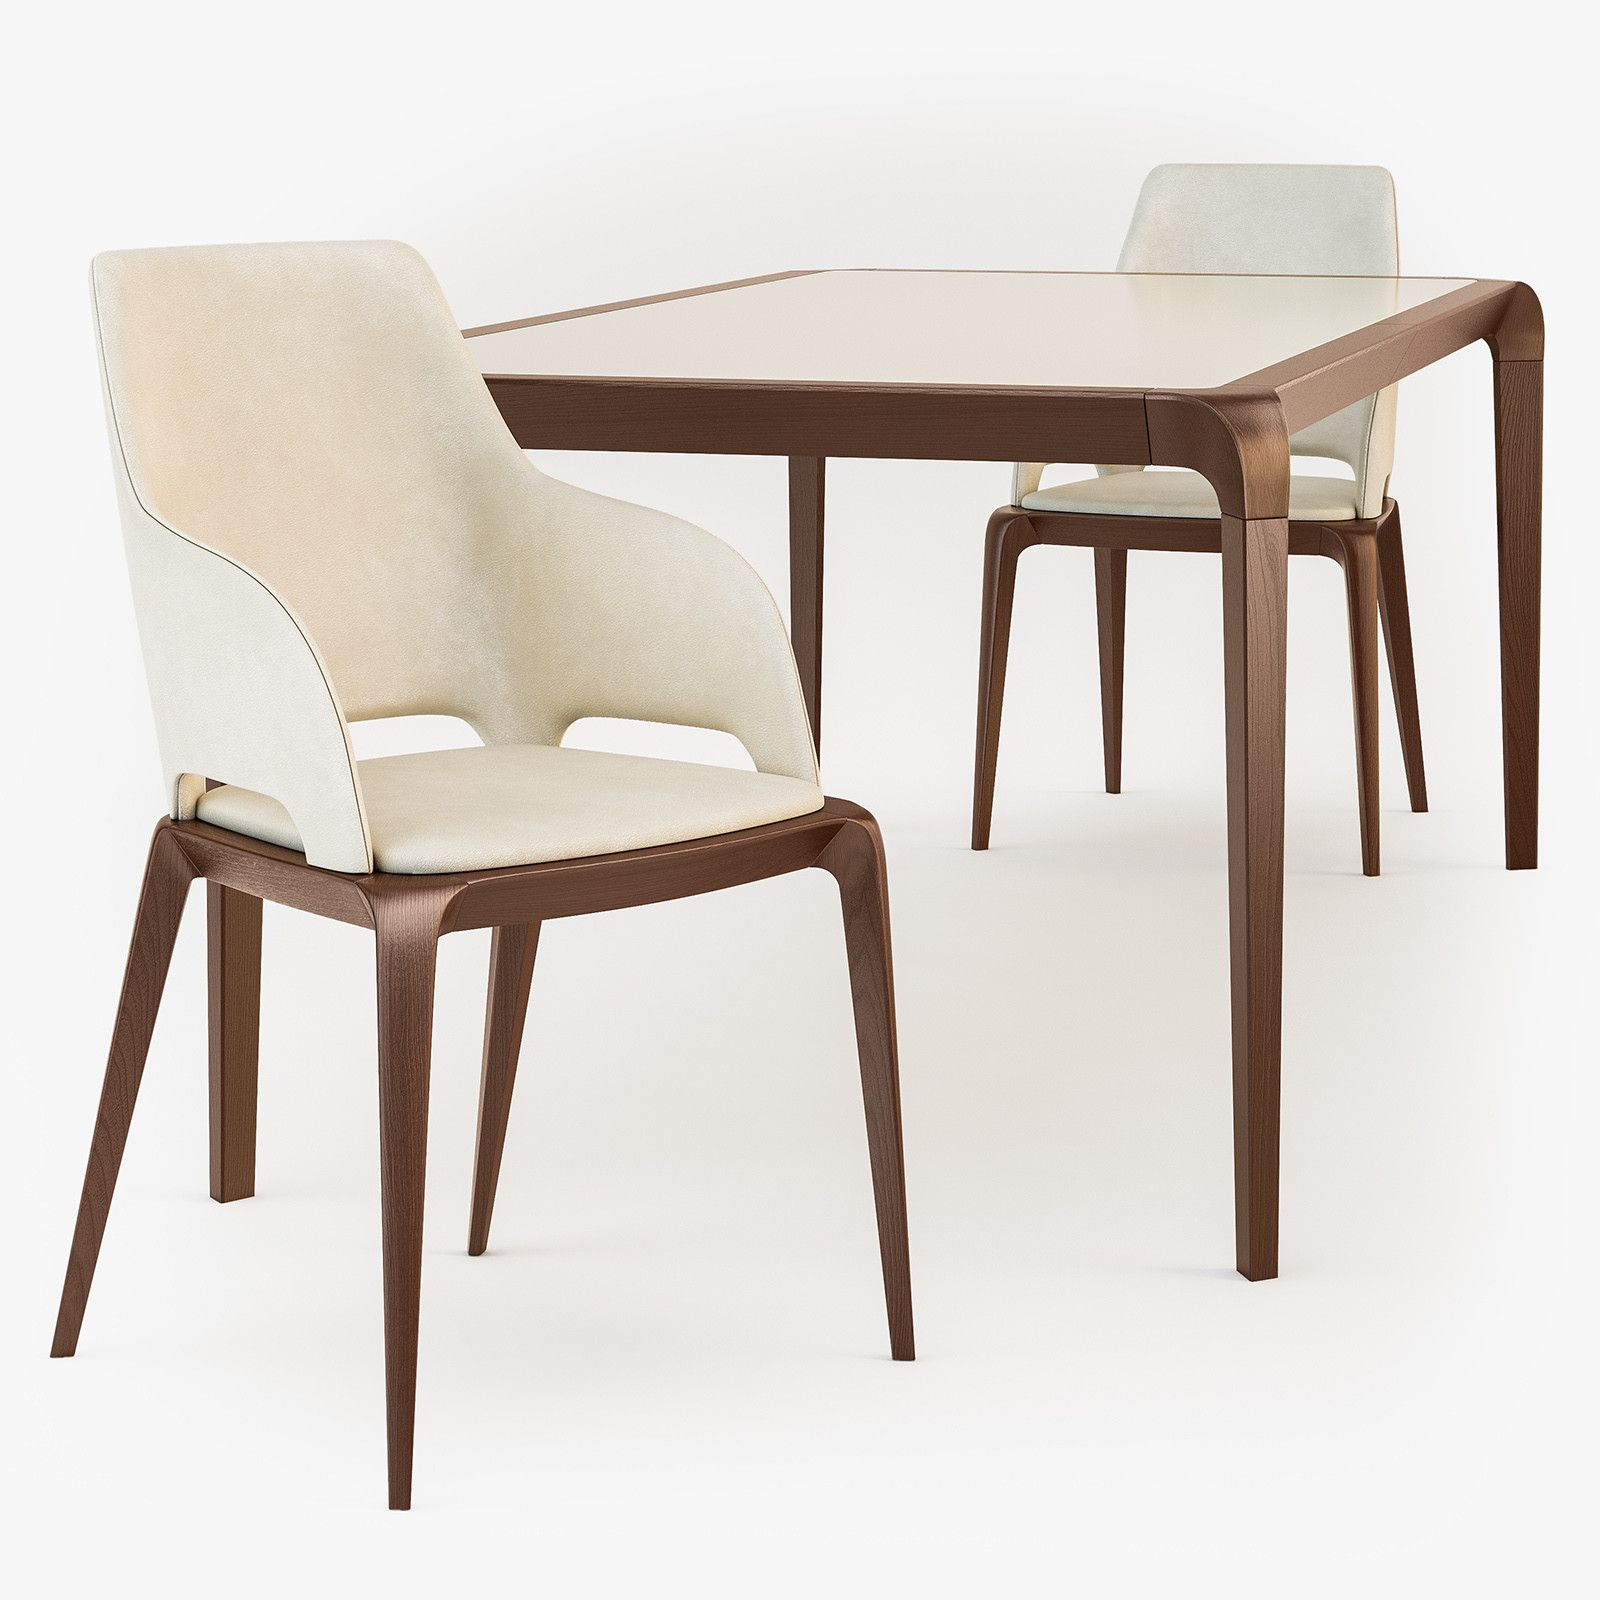 3d roche bobois brio dining table model